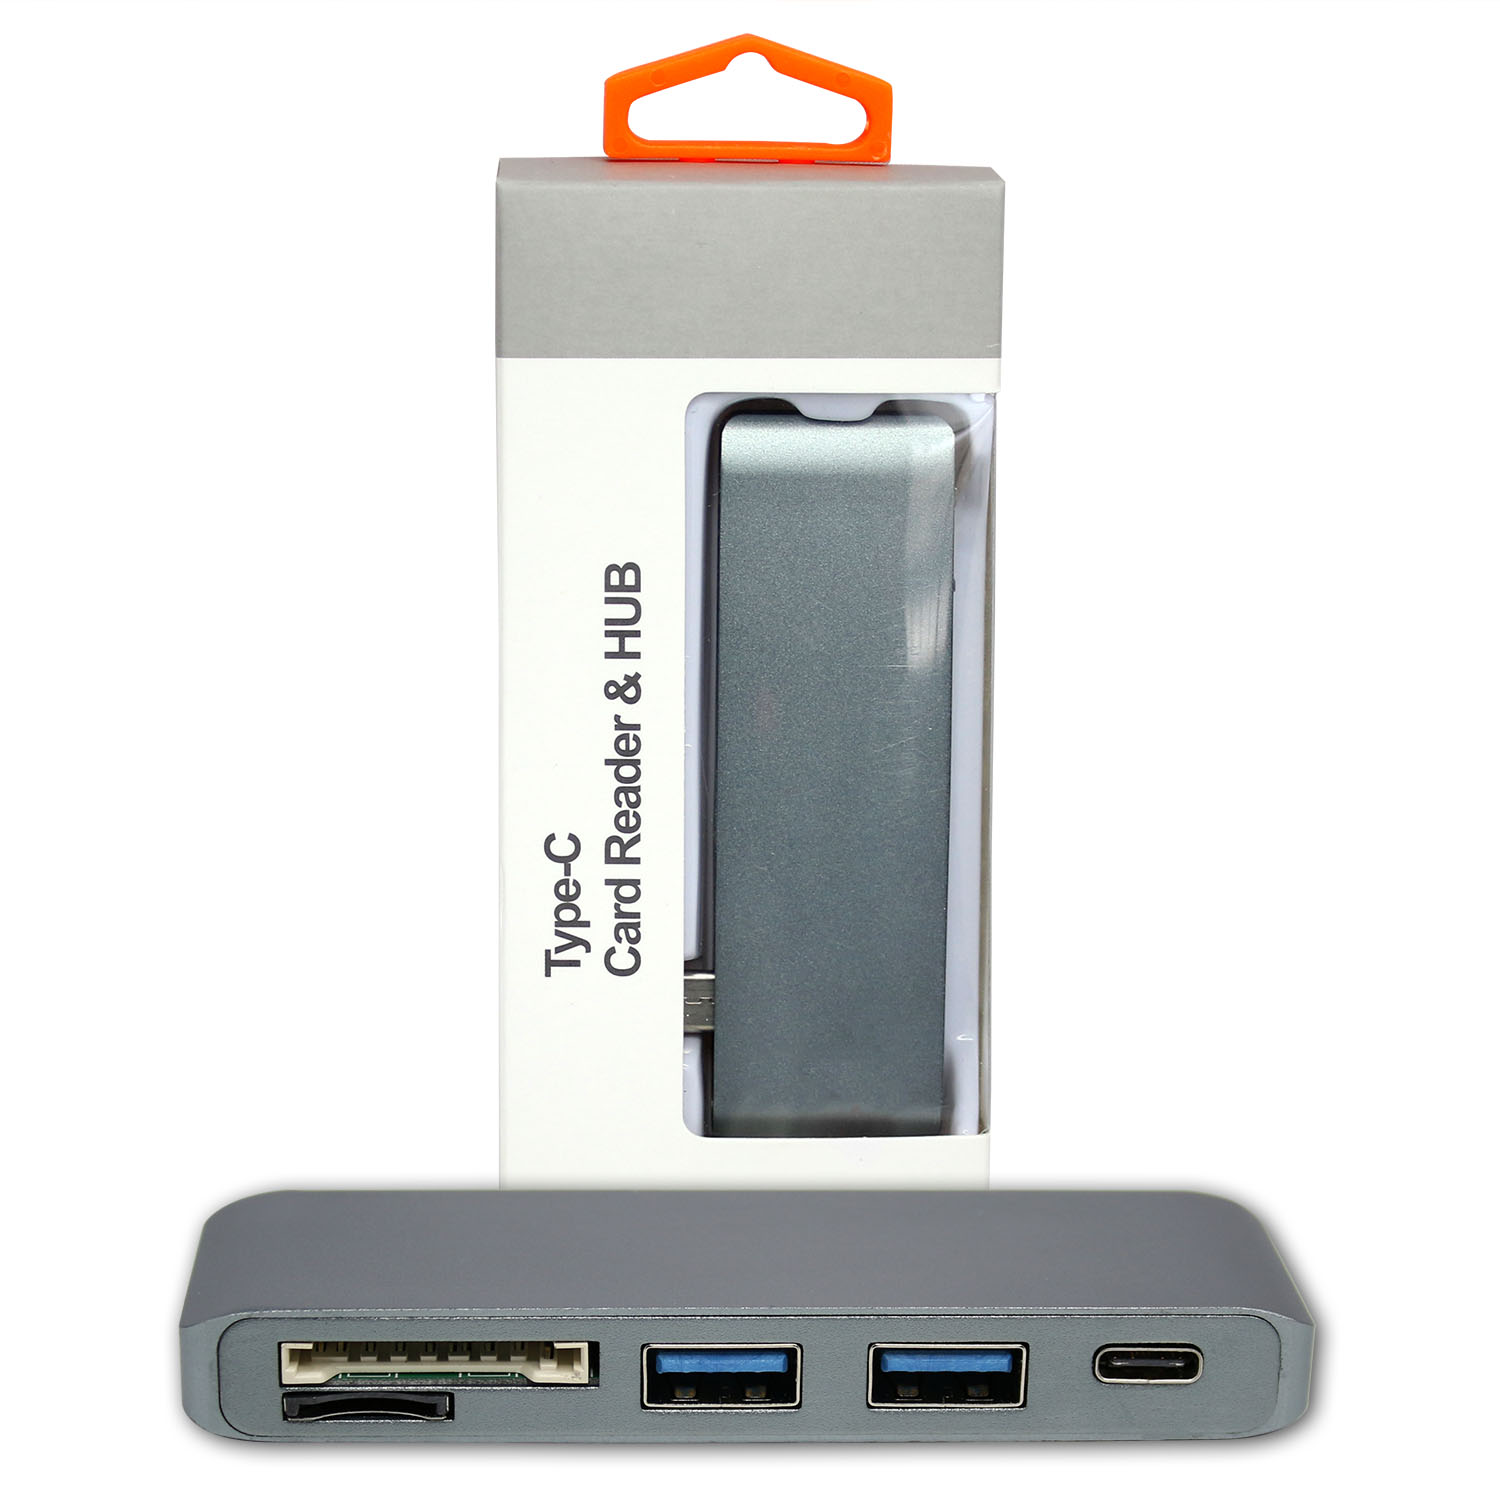 Ultimaxx USB 3.0 TYPE-C HUB-GR